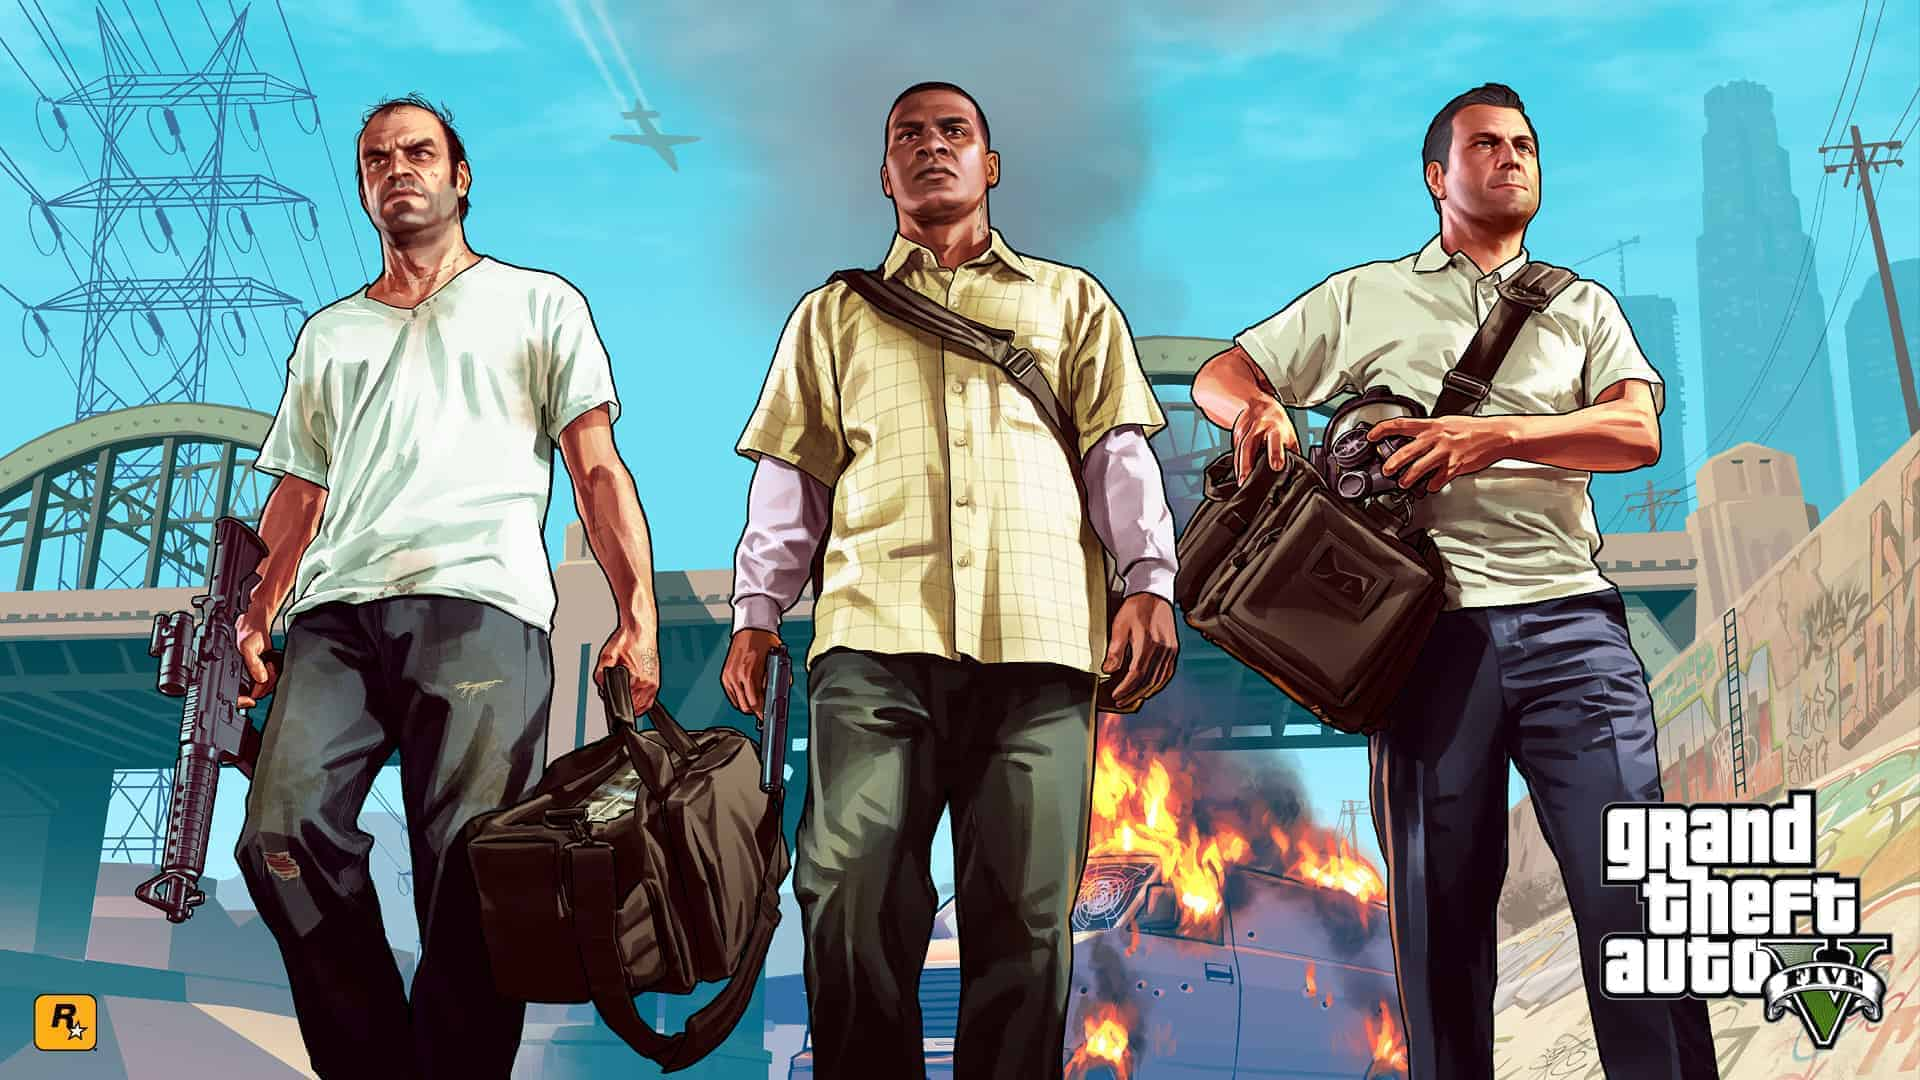 Grand Theft Auto V Poster HD Wallpaper 2013